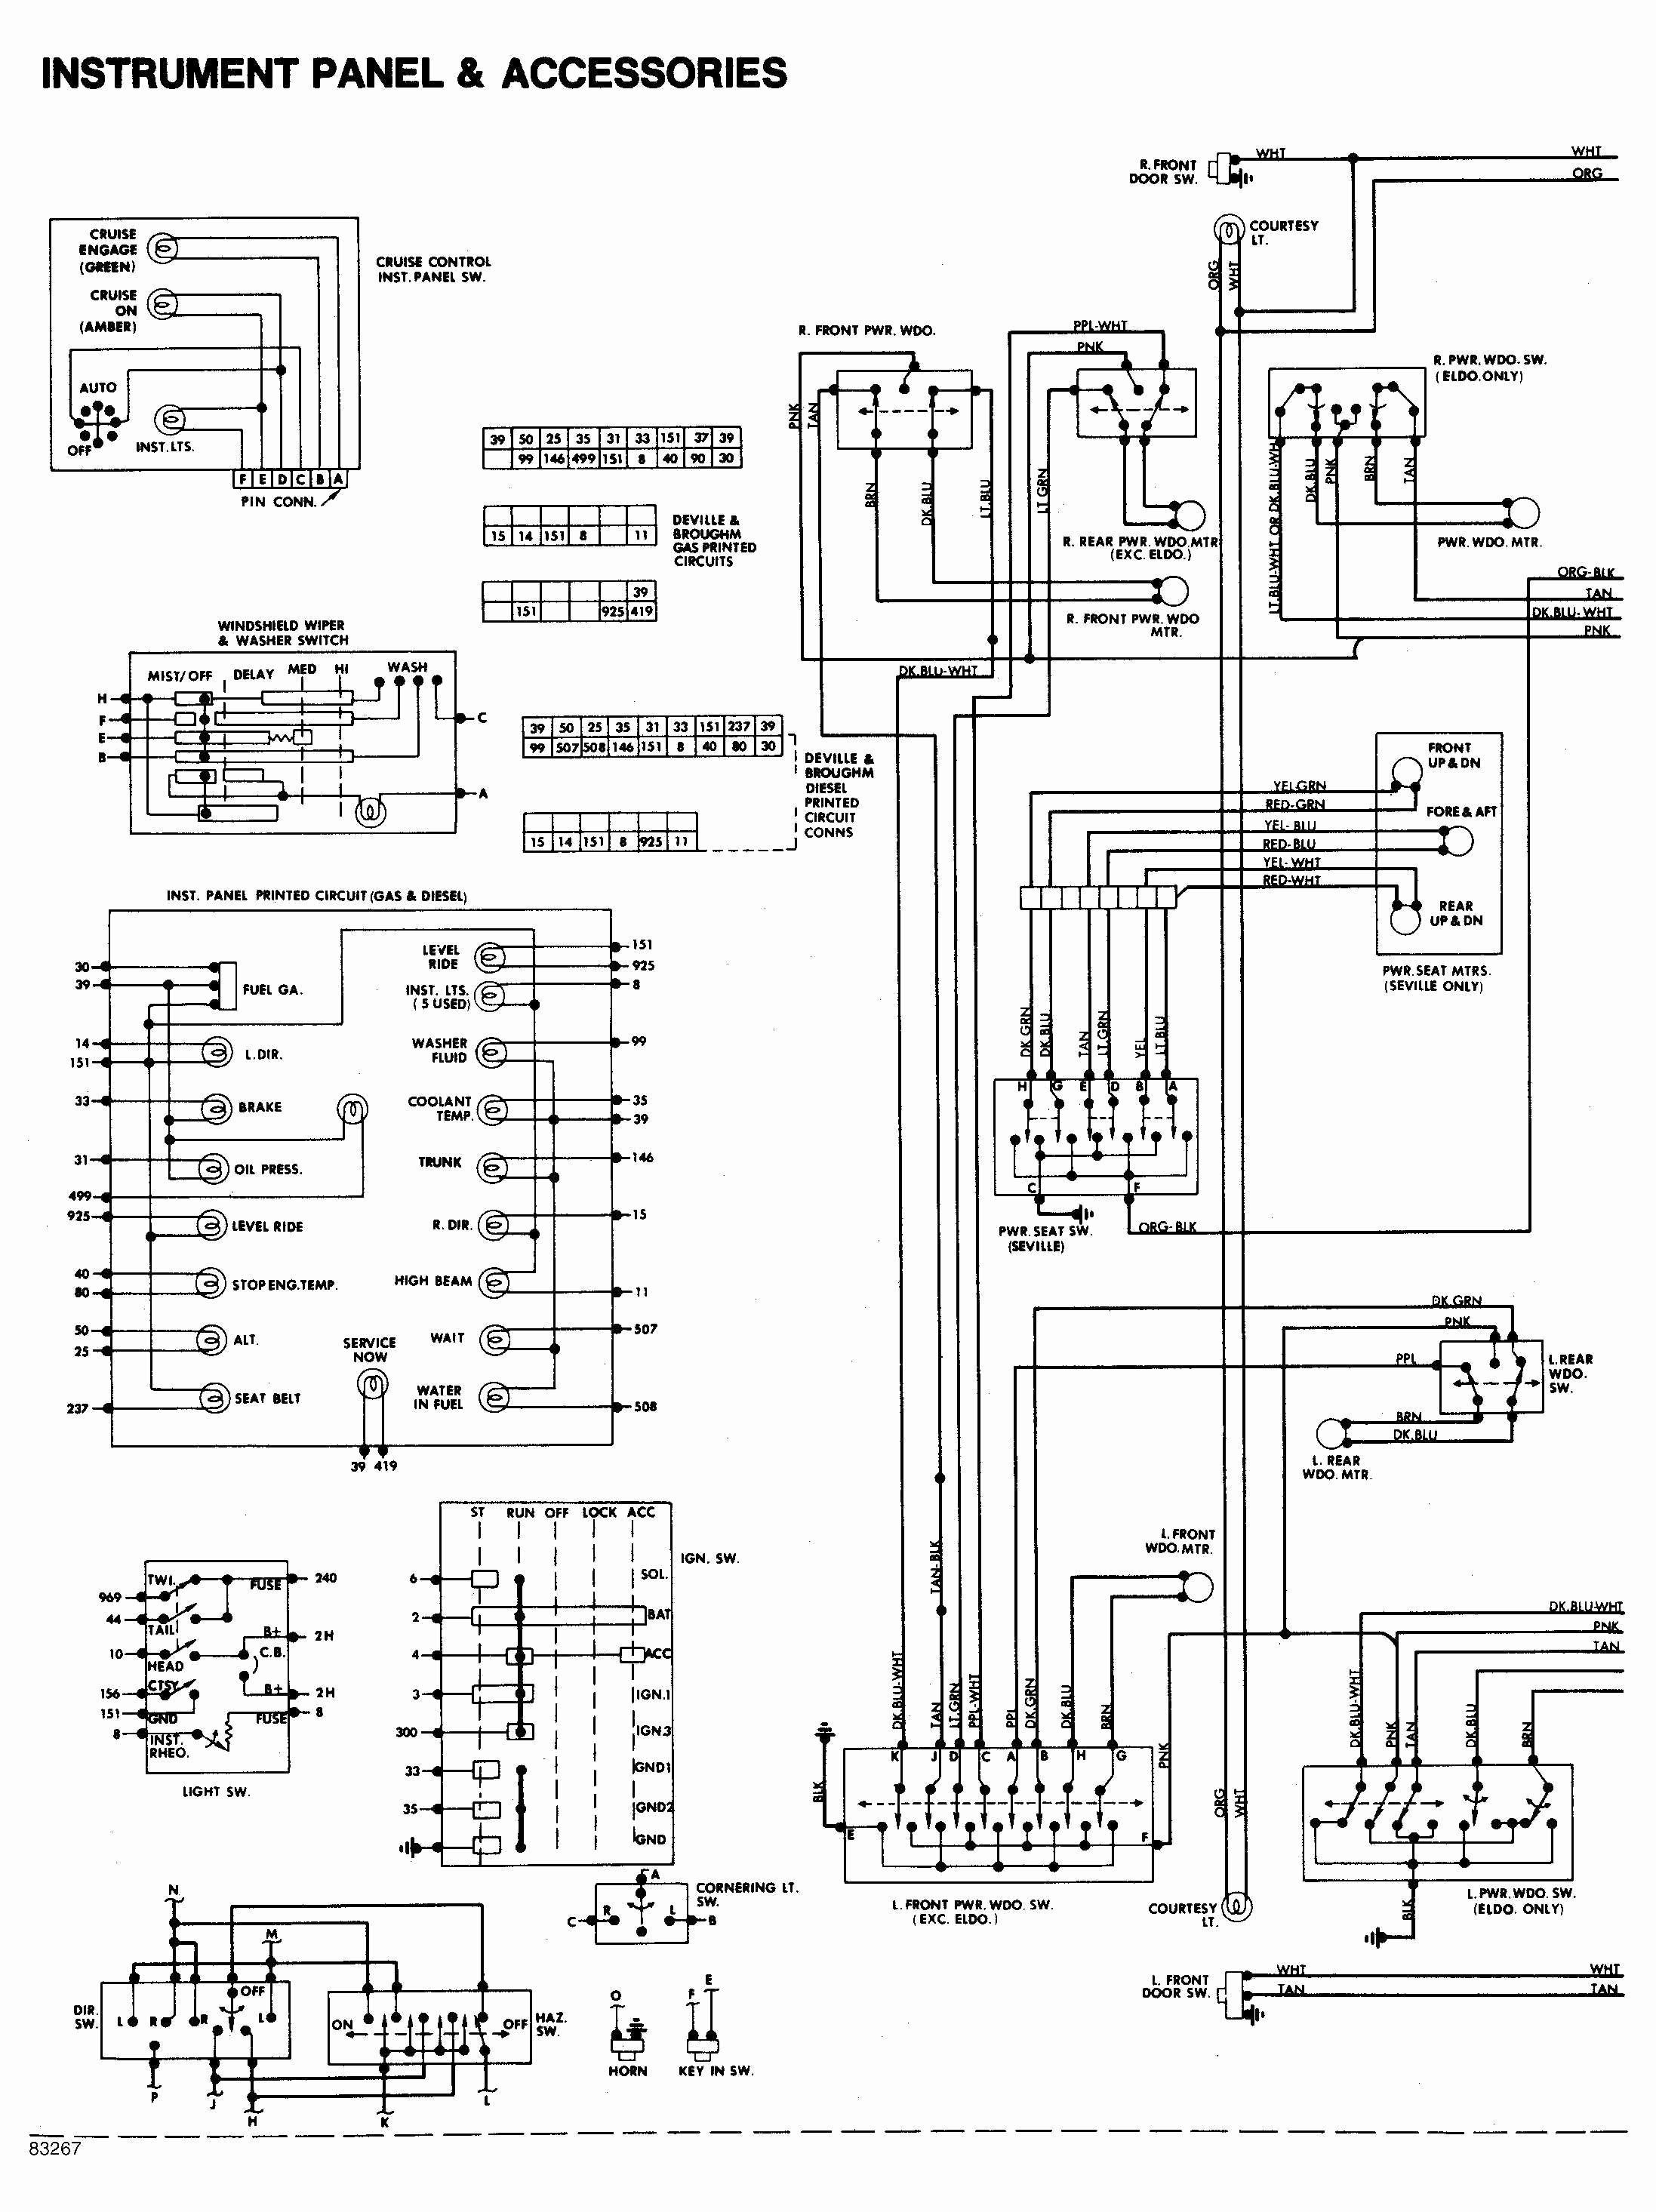 New Wiring Diagram Of Amplifier Diagram Diagramtemplate Diagramsample Electrical Wiring Diagram Electrical Diagram Diagram Design